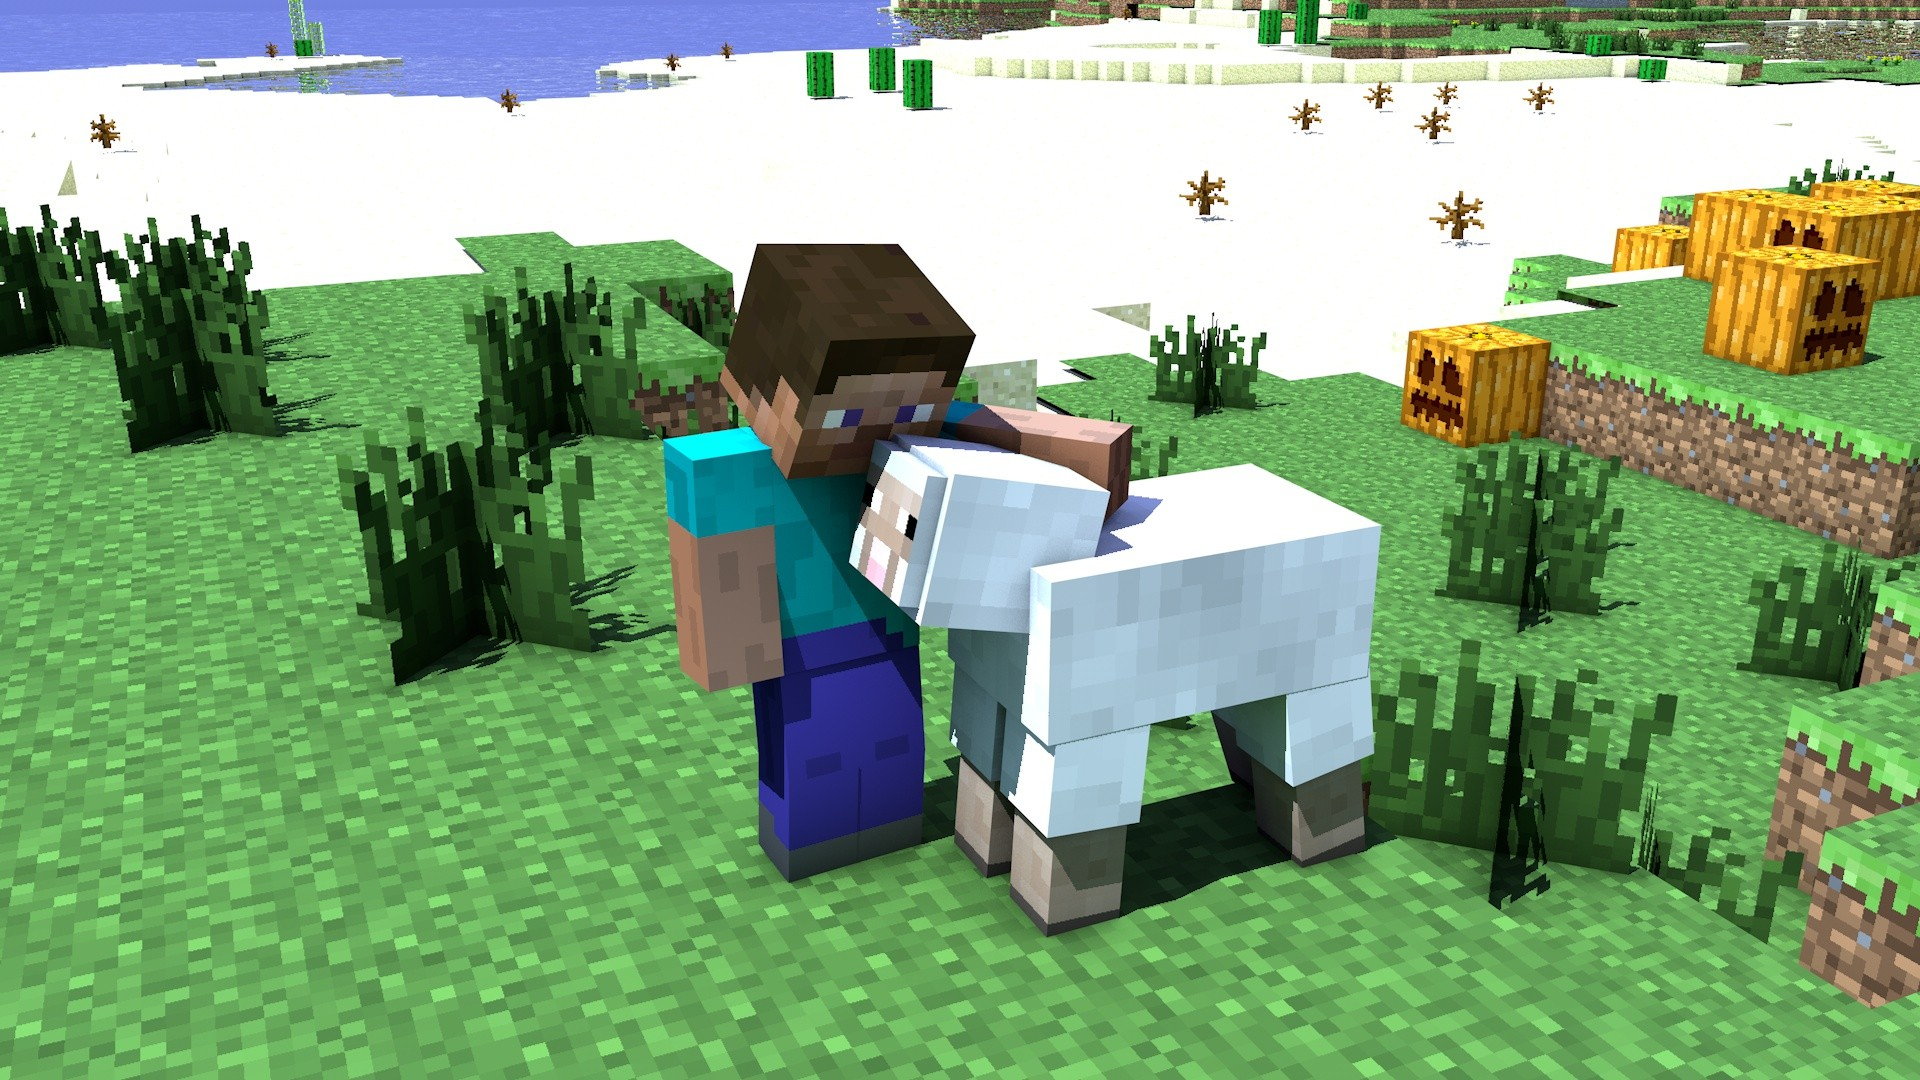 Sheep Steve Minecraft cinema 4d tapeta wallpaper | 1920x1080 | 228130 | WallpaperUP